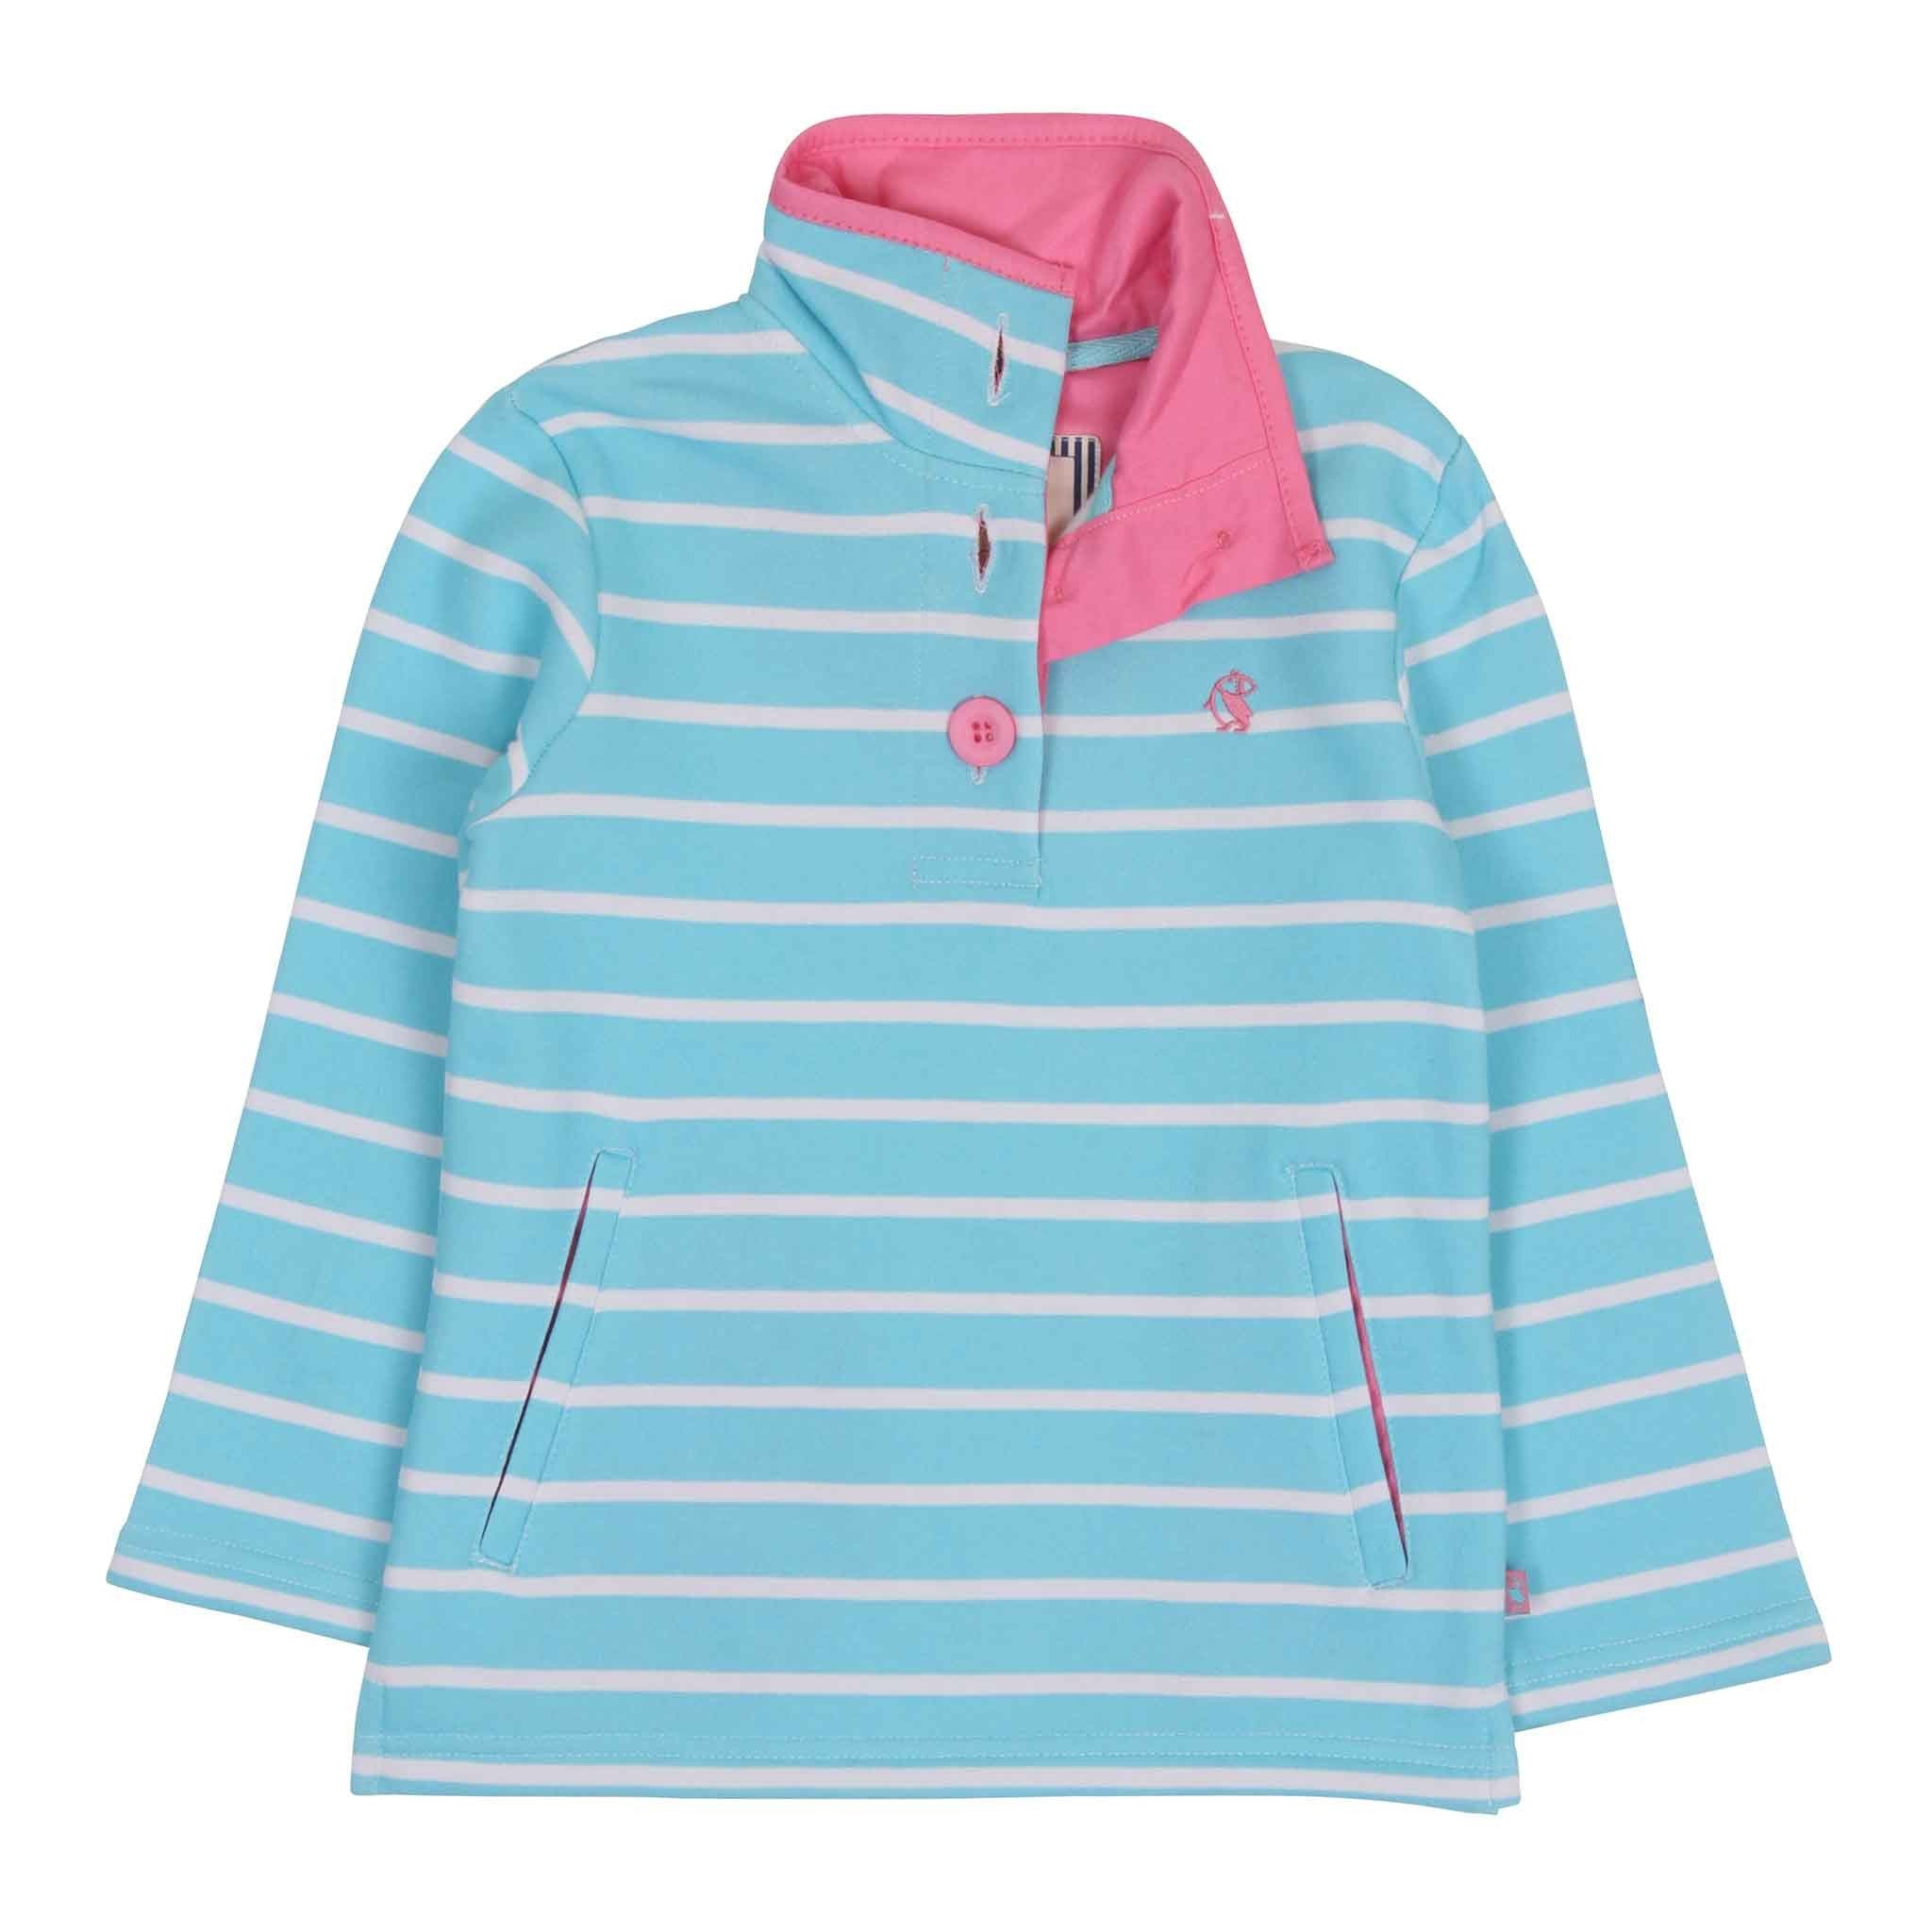 Pearl Cotton Jersey Top - Aqua Stripe